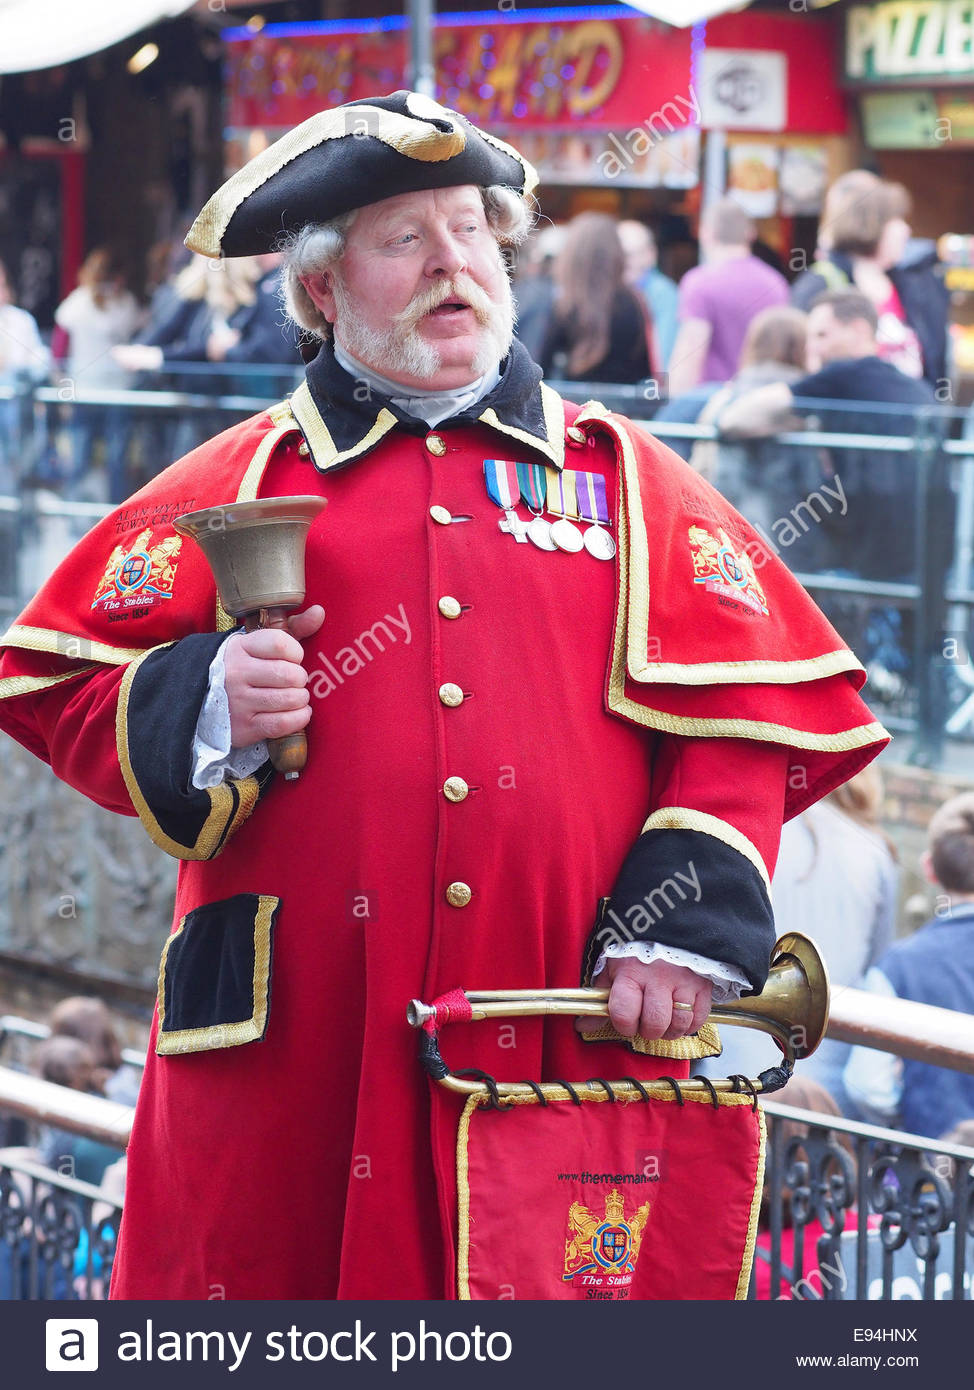 View of a traditional town crier  with bright red coat and holding a handbell and  bugle - Stock Image